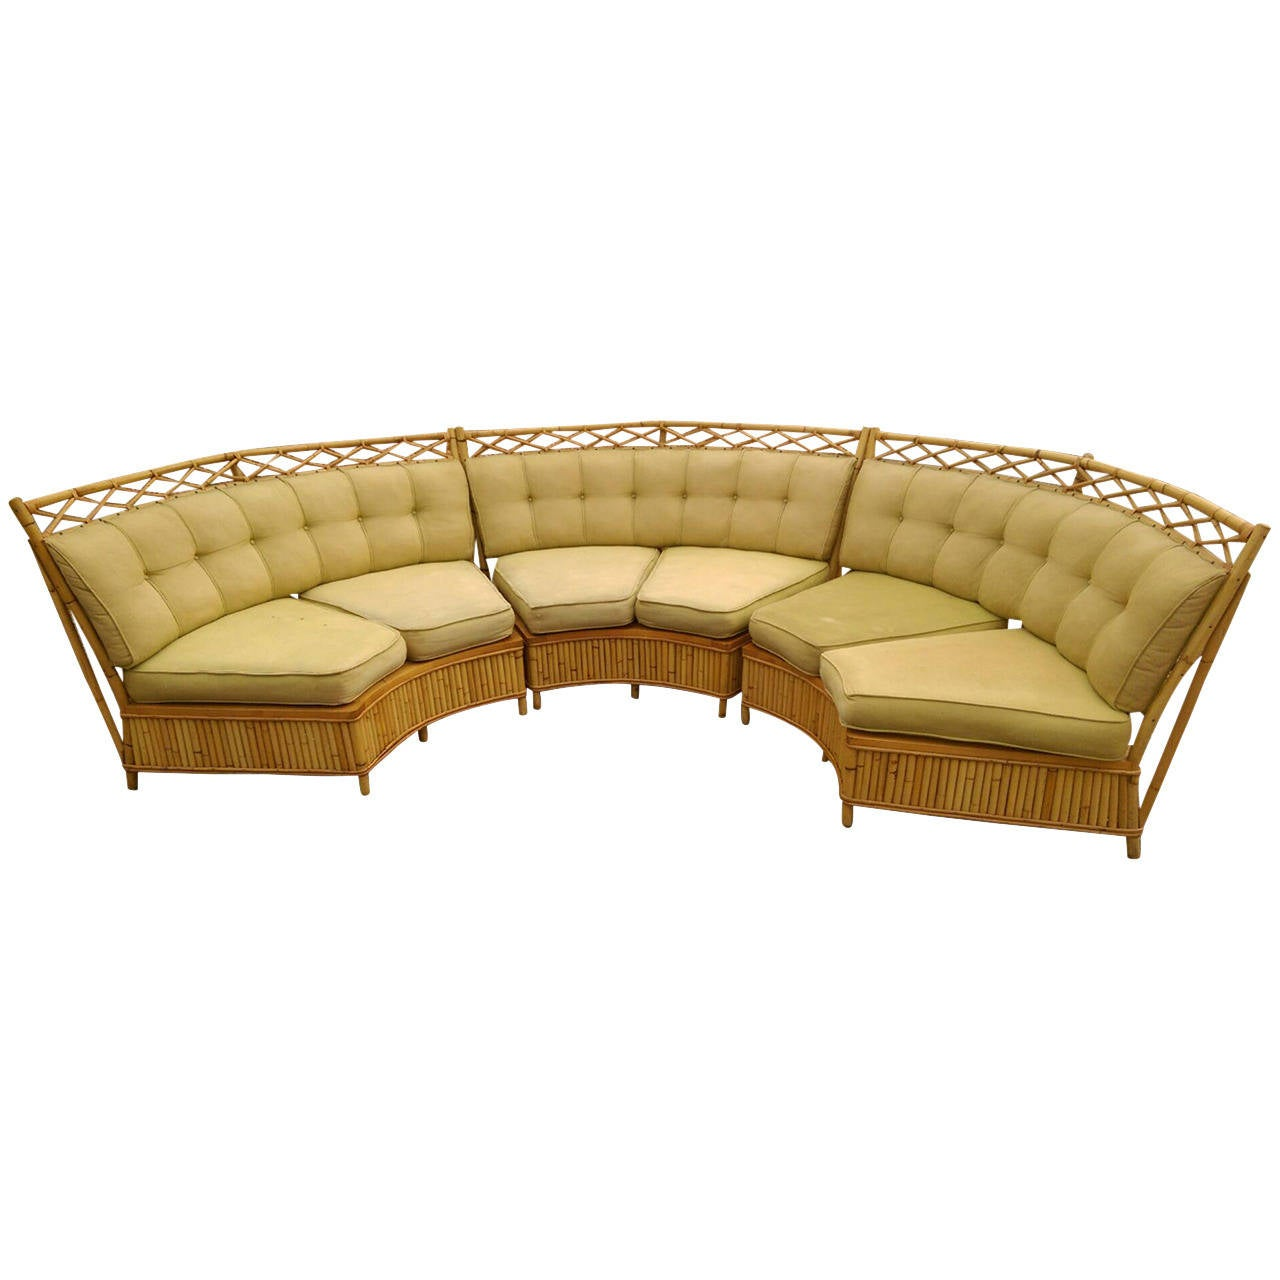 Beautiful Ficks Reed Midcentury Rattan Sectional Sofa at